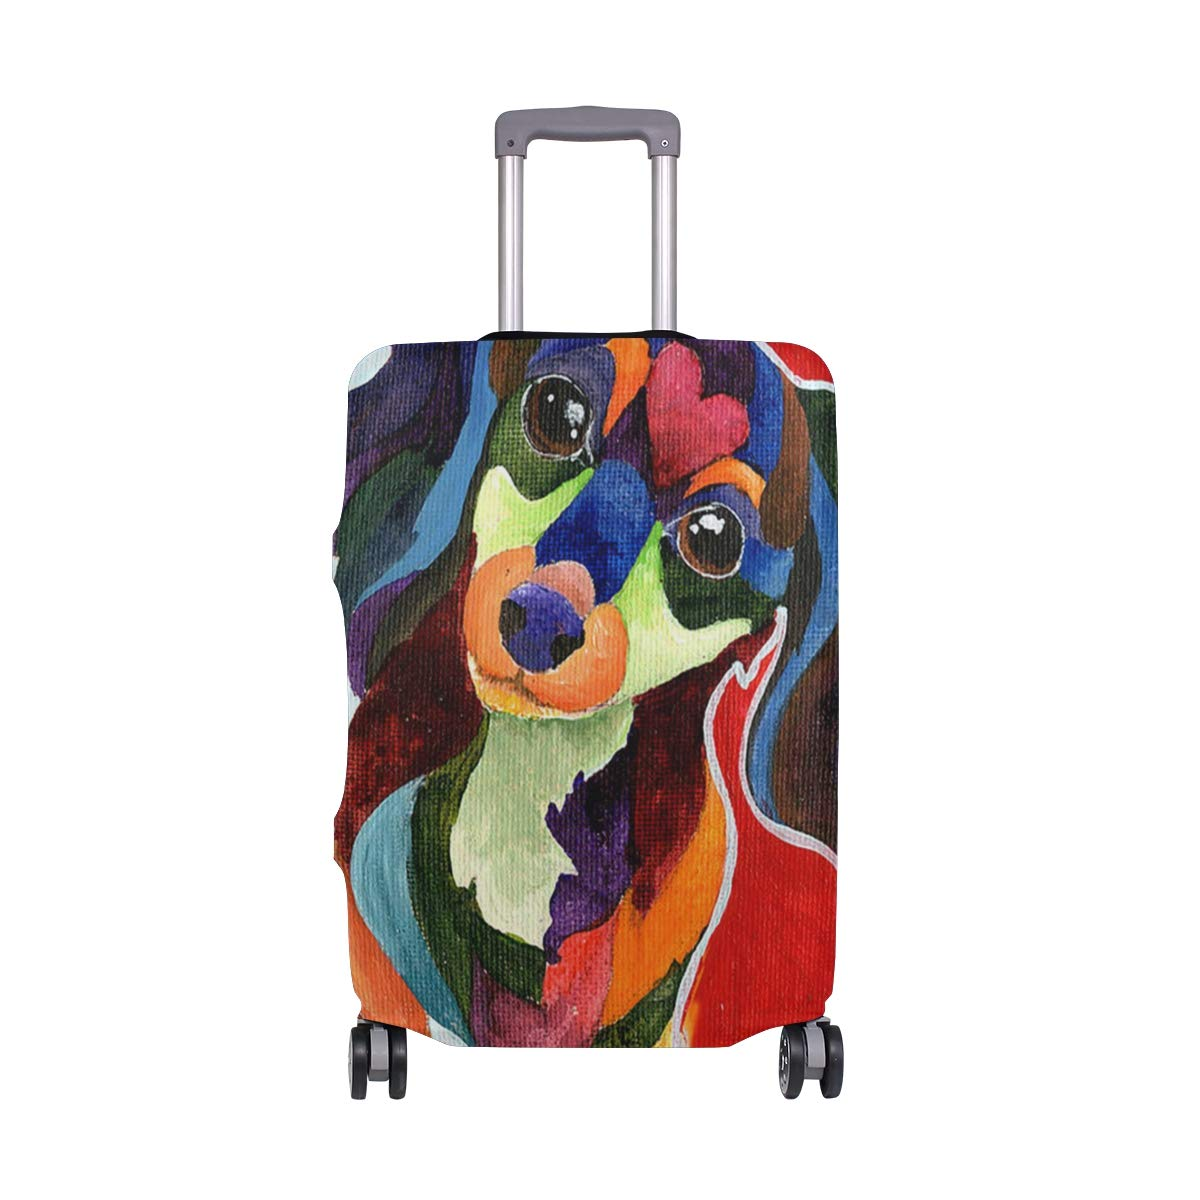 Puppy Love Long Haired Travel Luggage Cover Suitcase Protector Fits 18'' - 32''